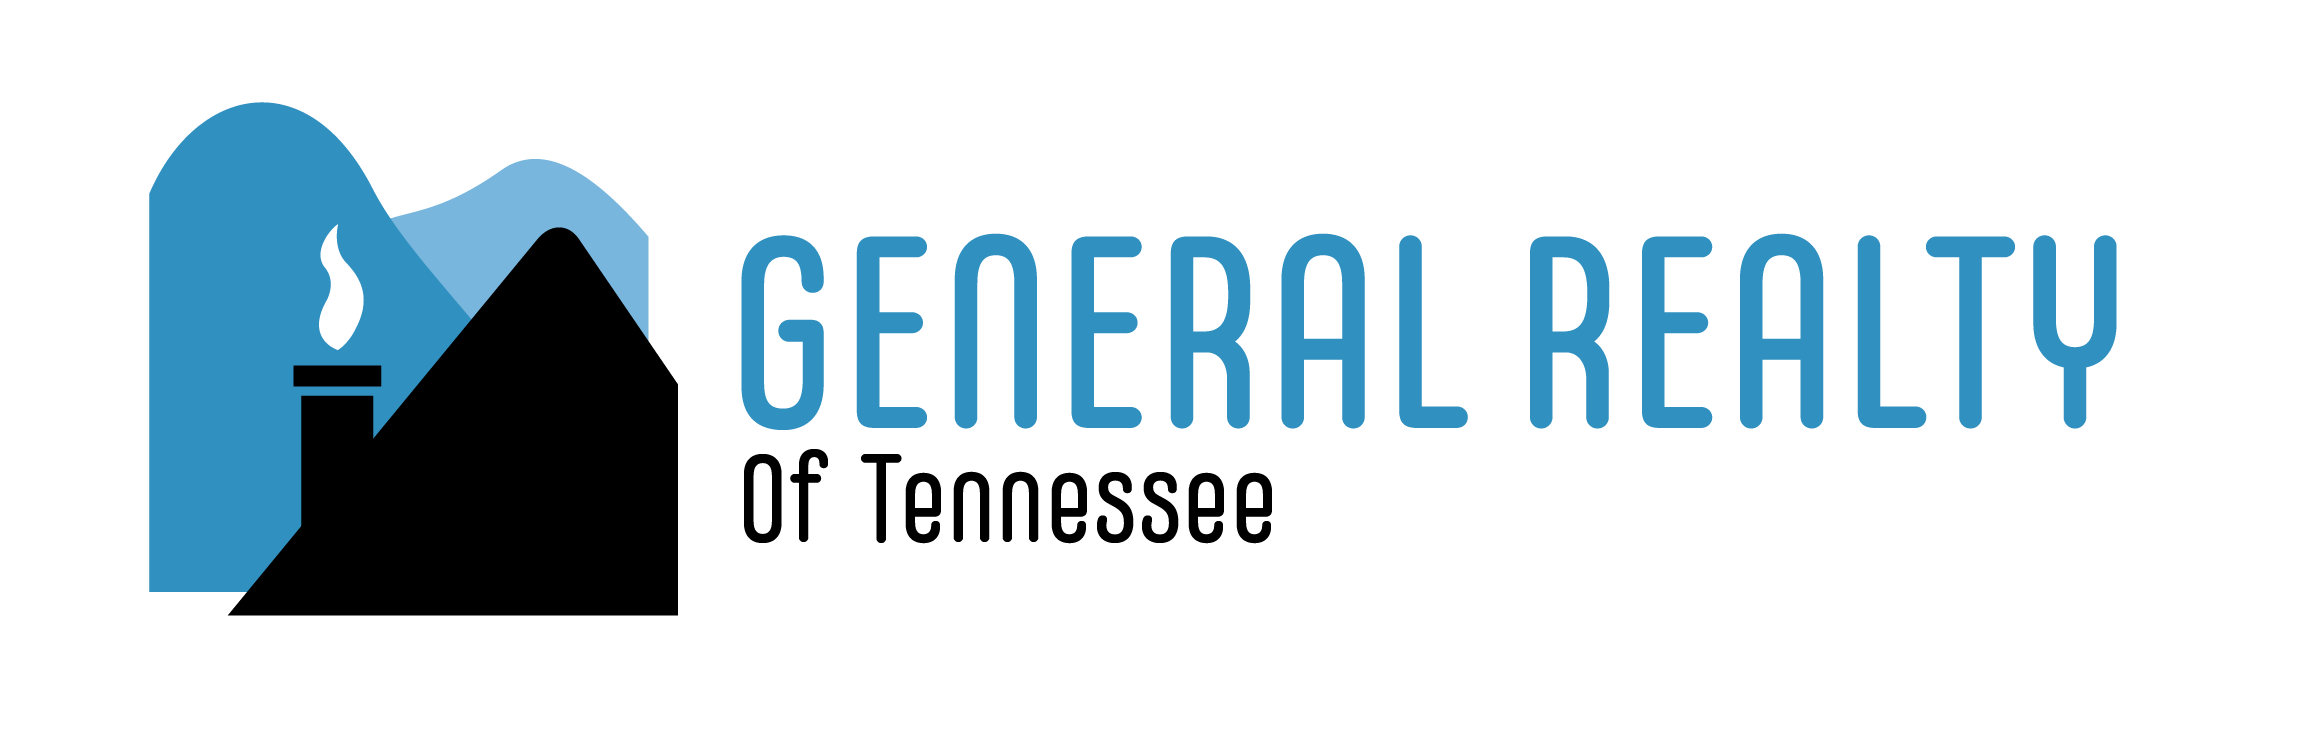 General Realty of Tennessee Logo